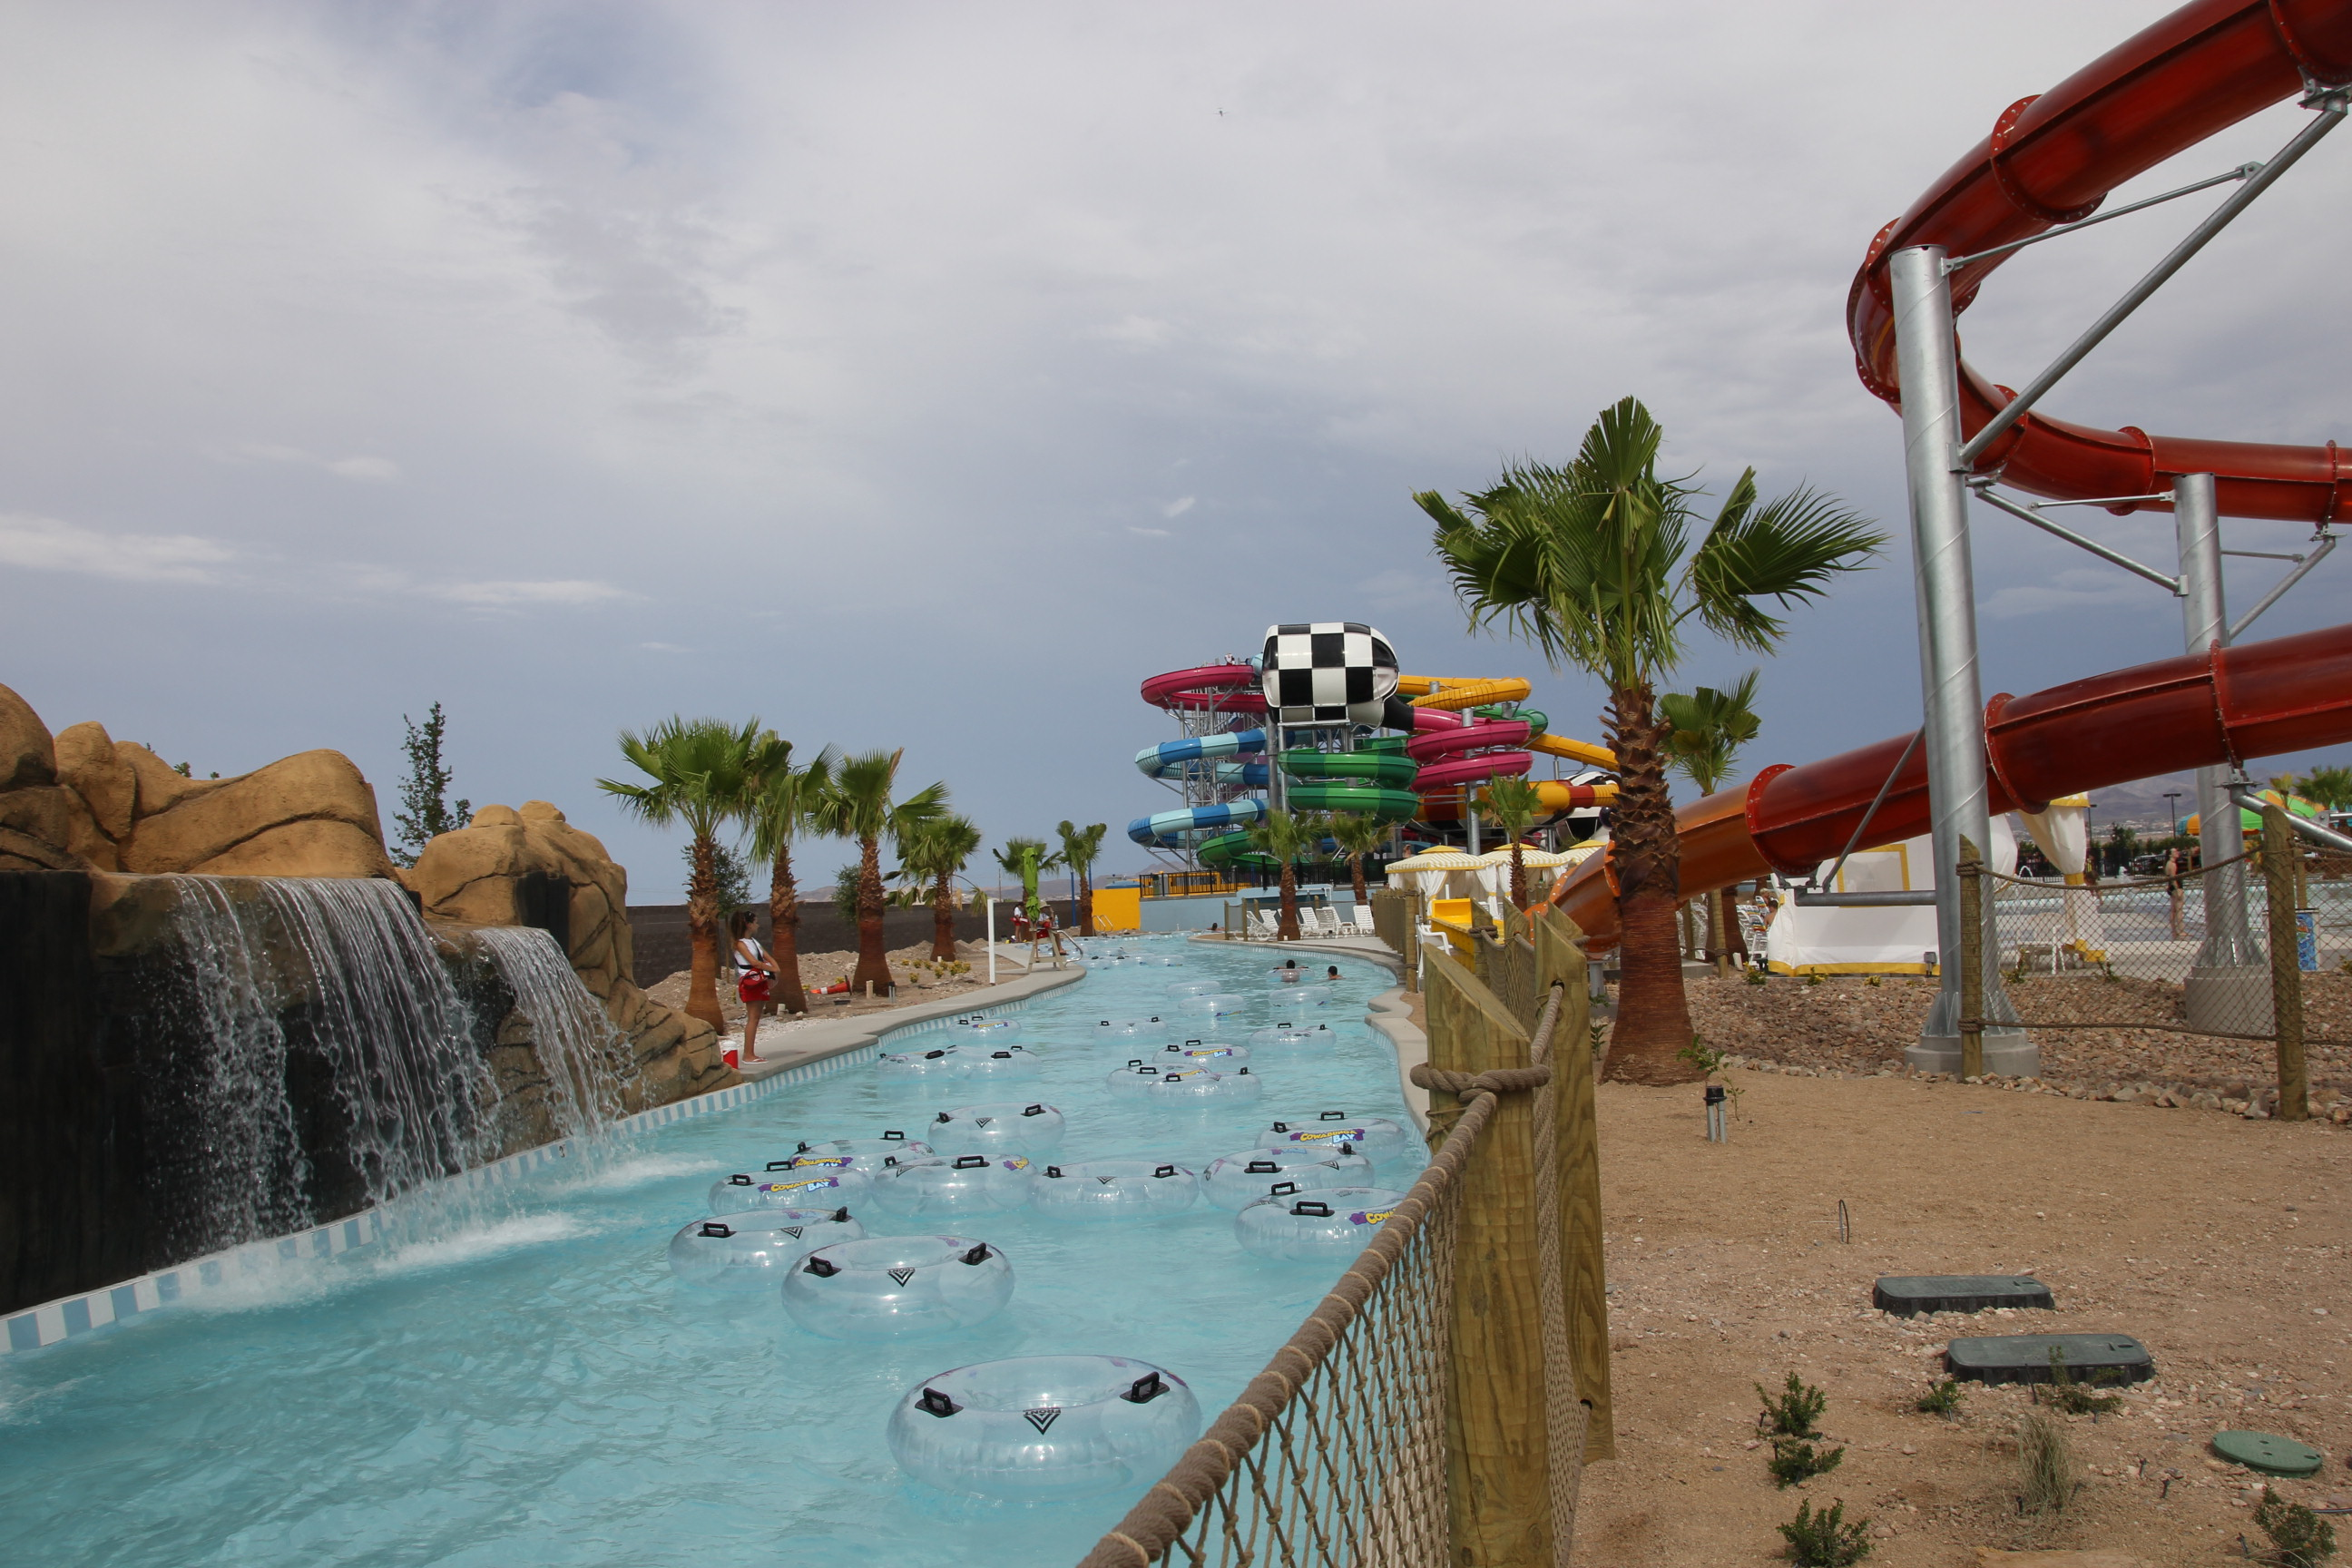 Rides and Pools for Smaller Children